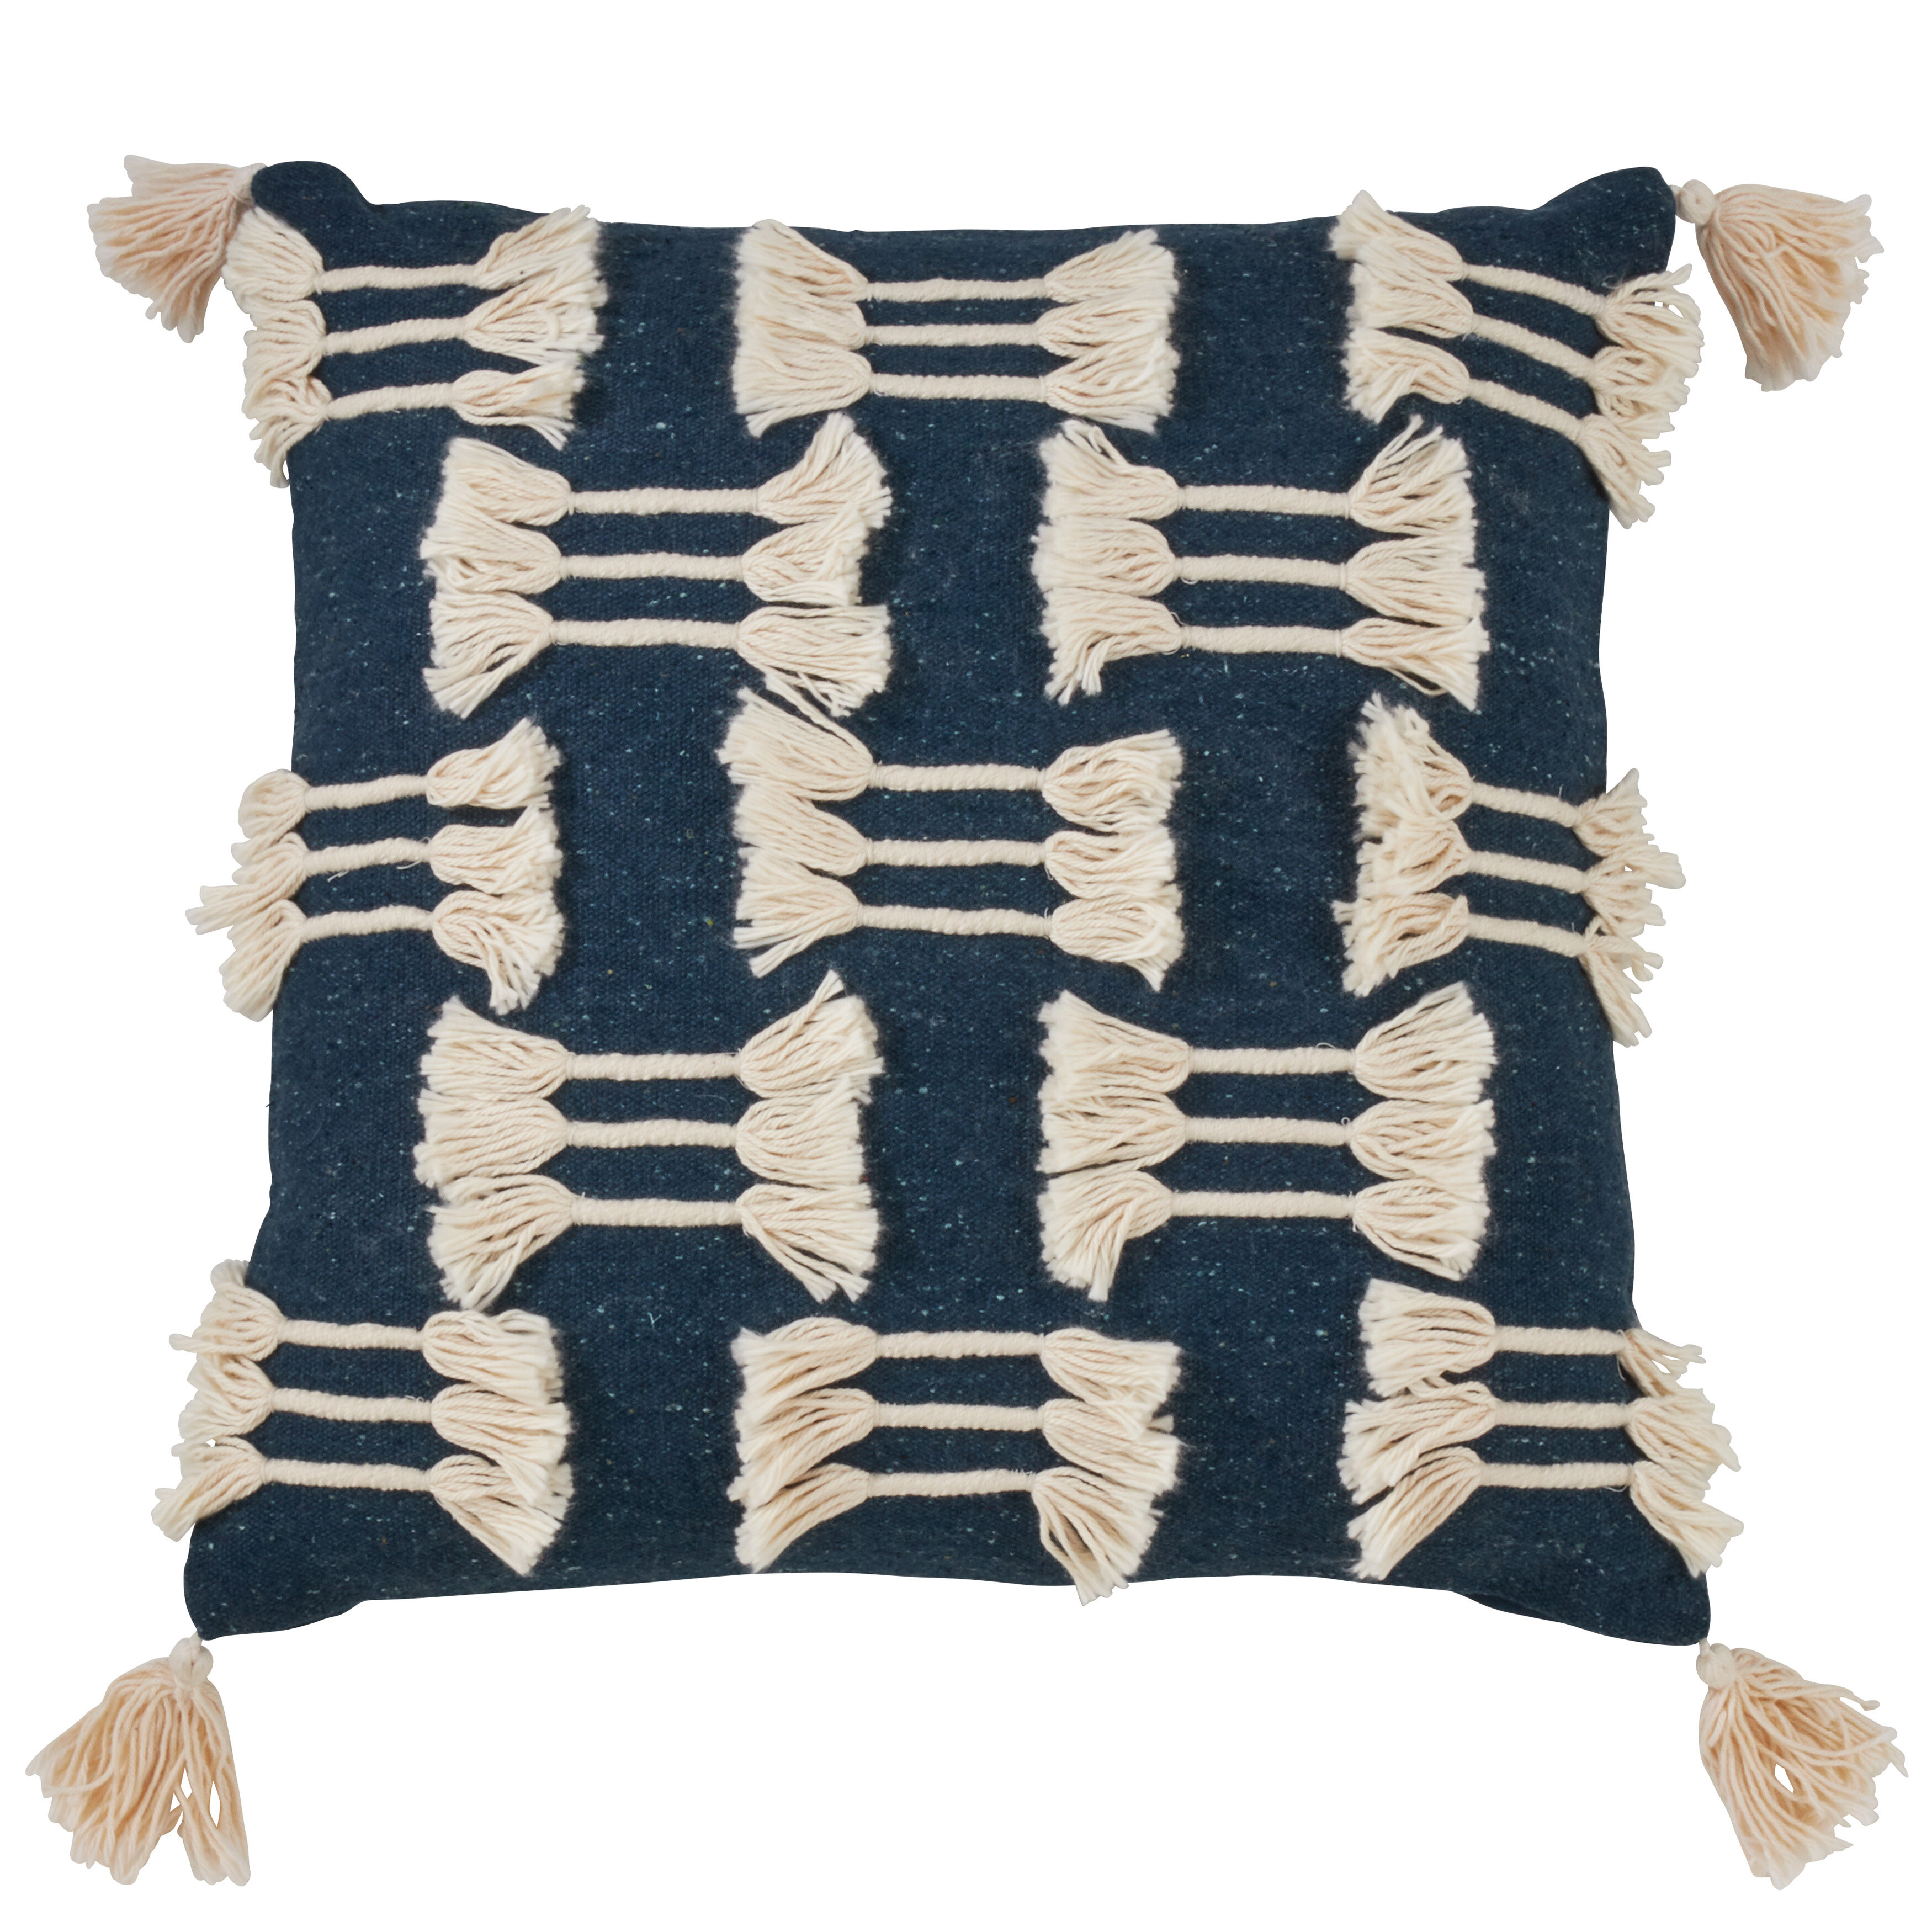 Ju-Ju Bussa Pillow cover embroidered stripe Spark Modern pillow ON BOTH SIDES